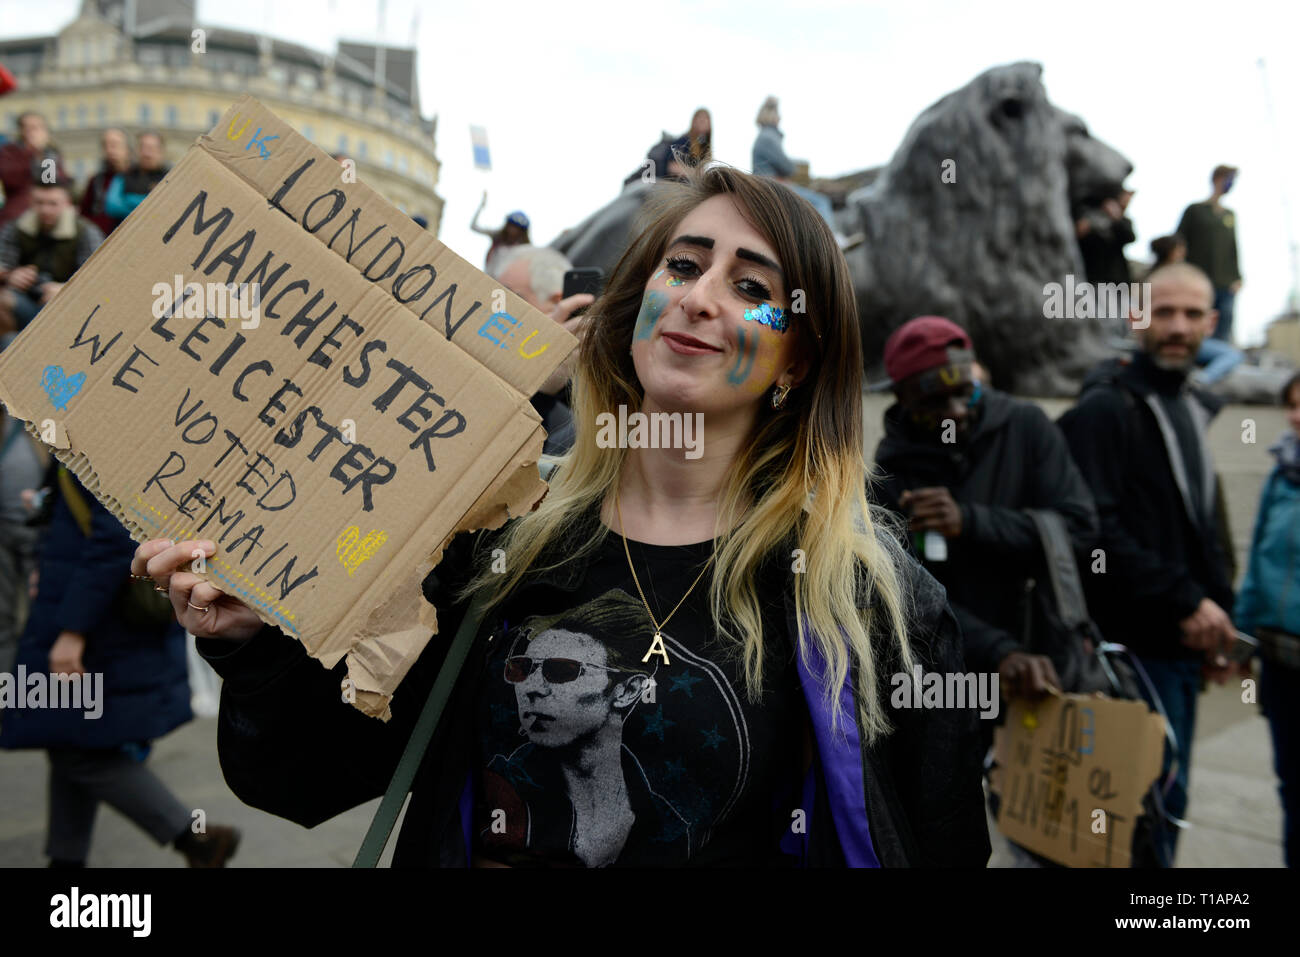 A protester seen holding a placard that says 'Manchester, Leicester we voted remain' during the protest. Over a million people marched peacefully in central London in favor of a second referendum. People gathered at Park Lane to rally at Parliament Square to demonstrate against the Tory government's Brexit negotiations, and to demand a second vote on the final Brexit deal. March was organized by The Peoples Vote. - Stock Image